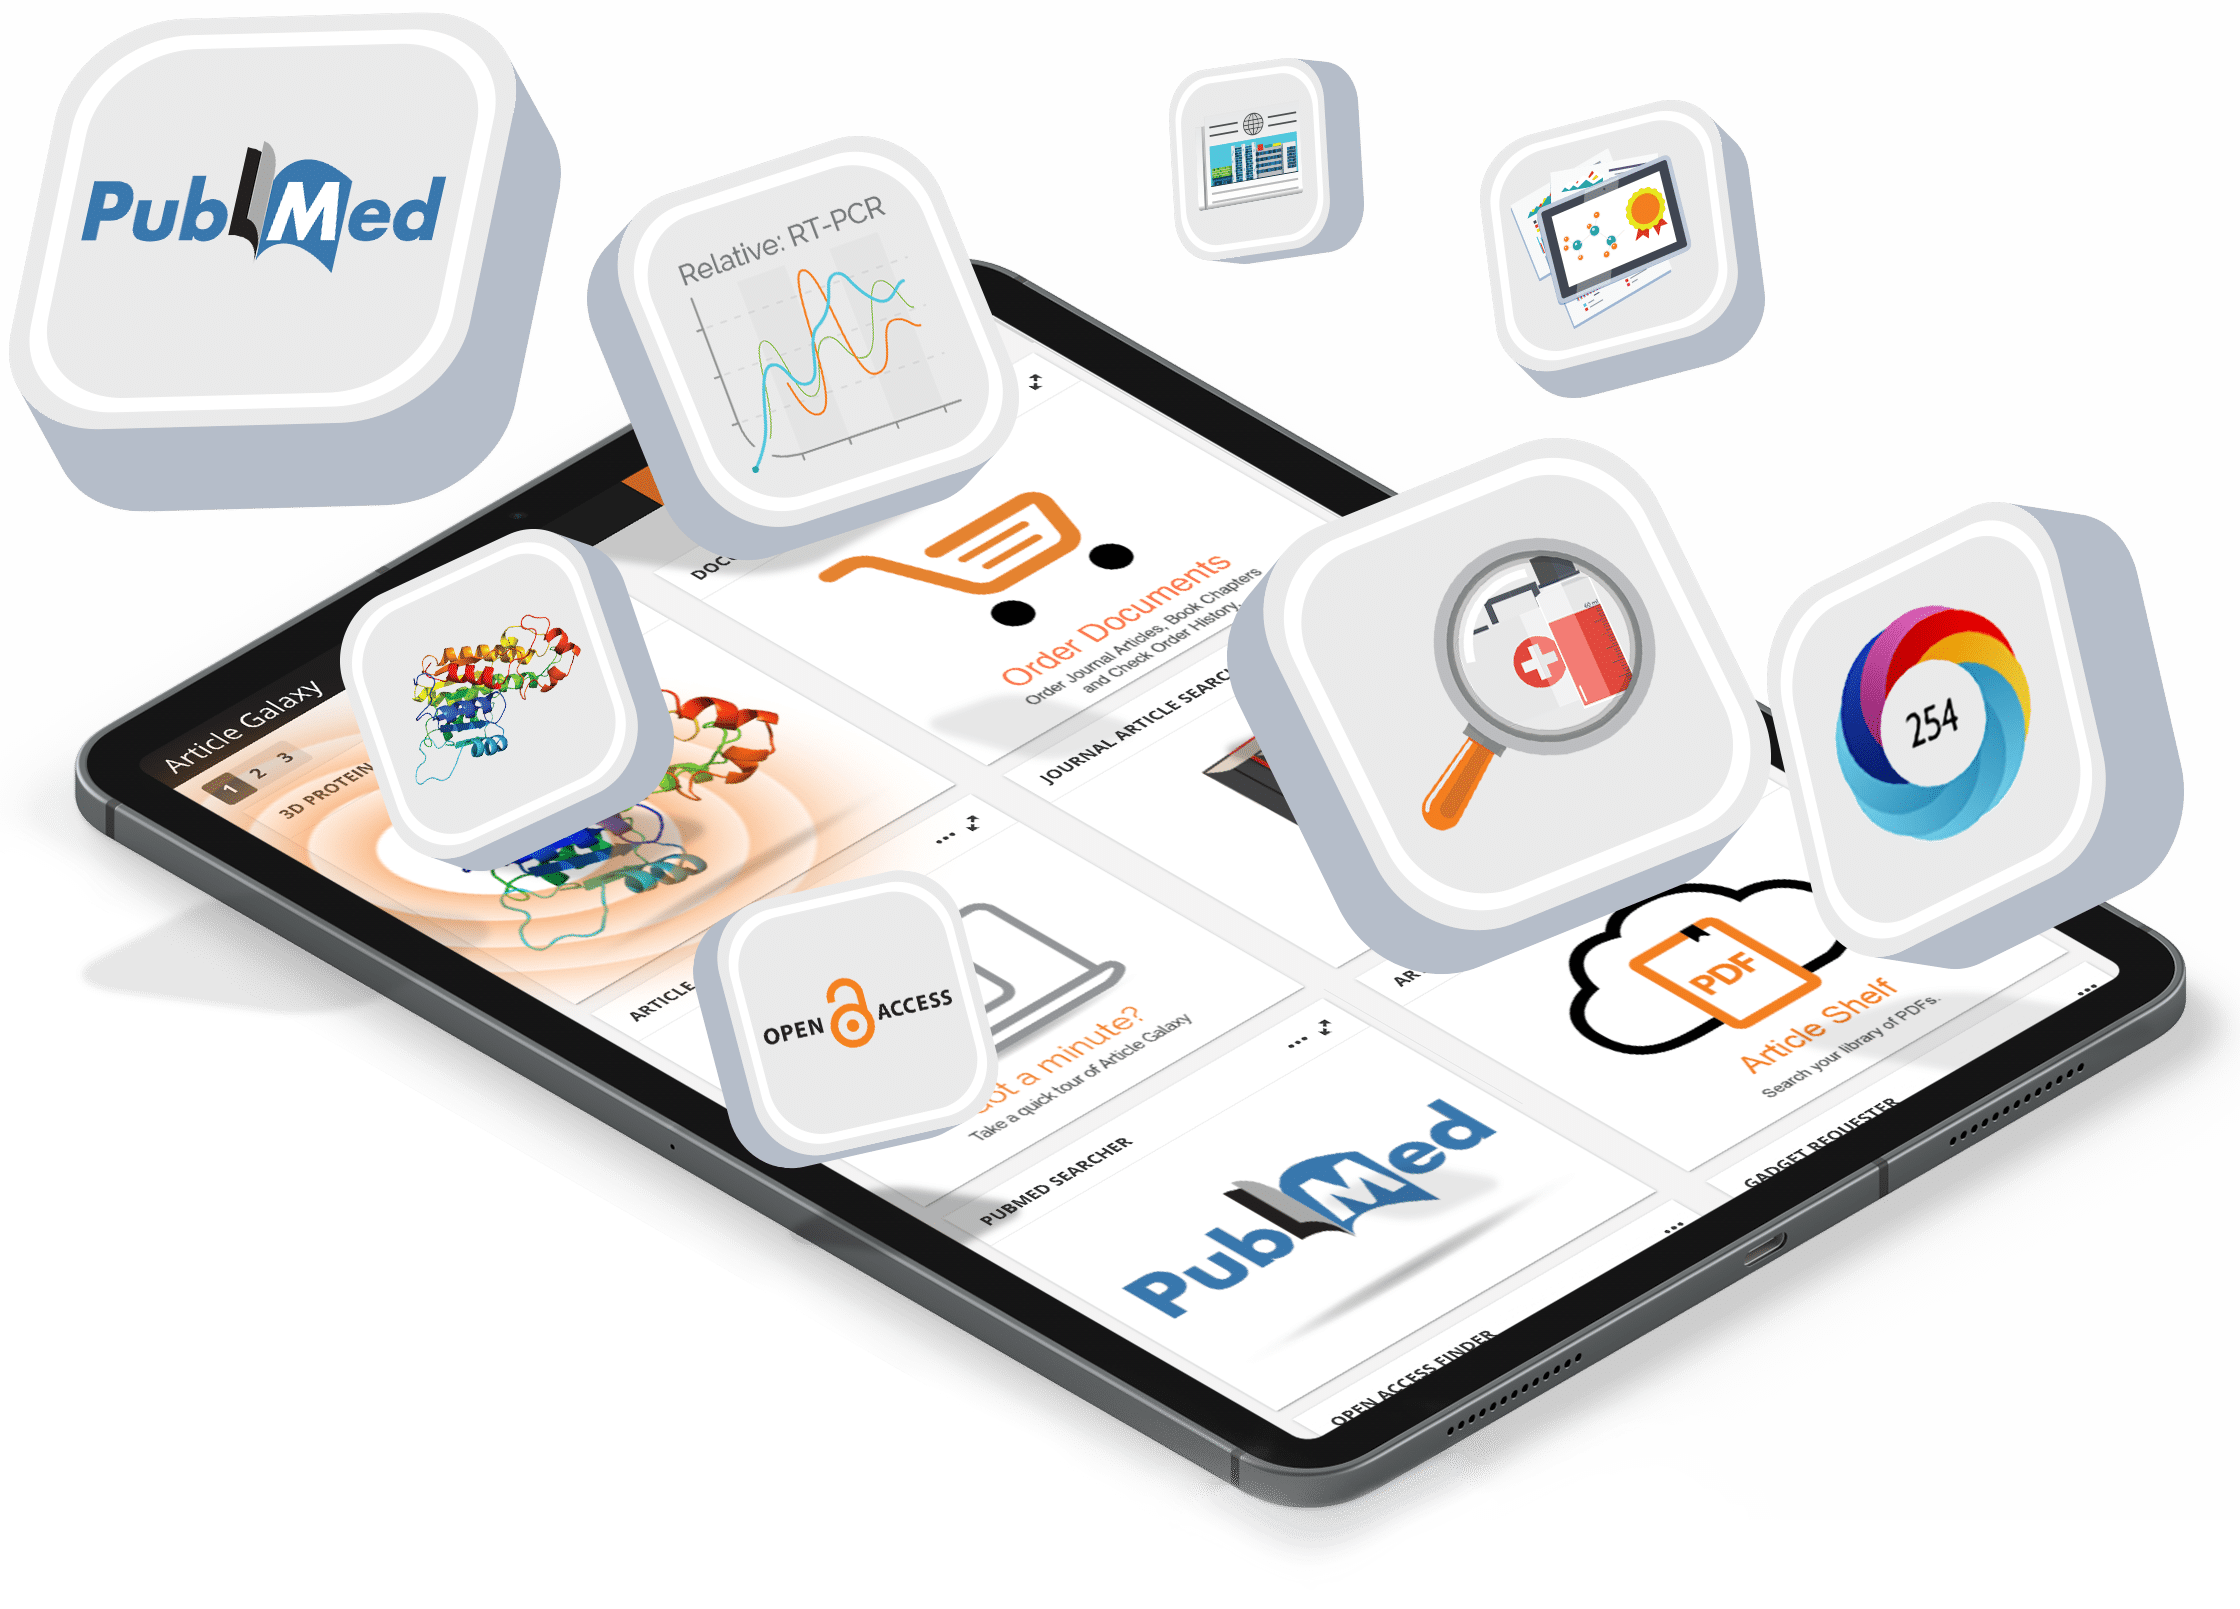 Article Galaxy research platform tools for enhanced productivity